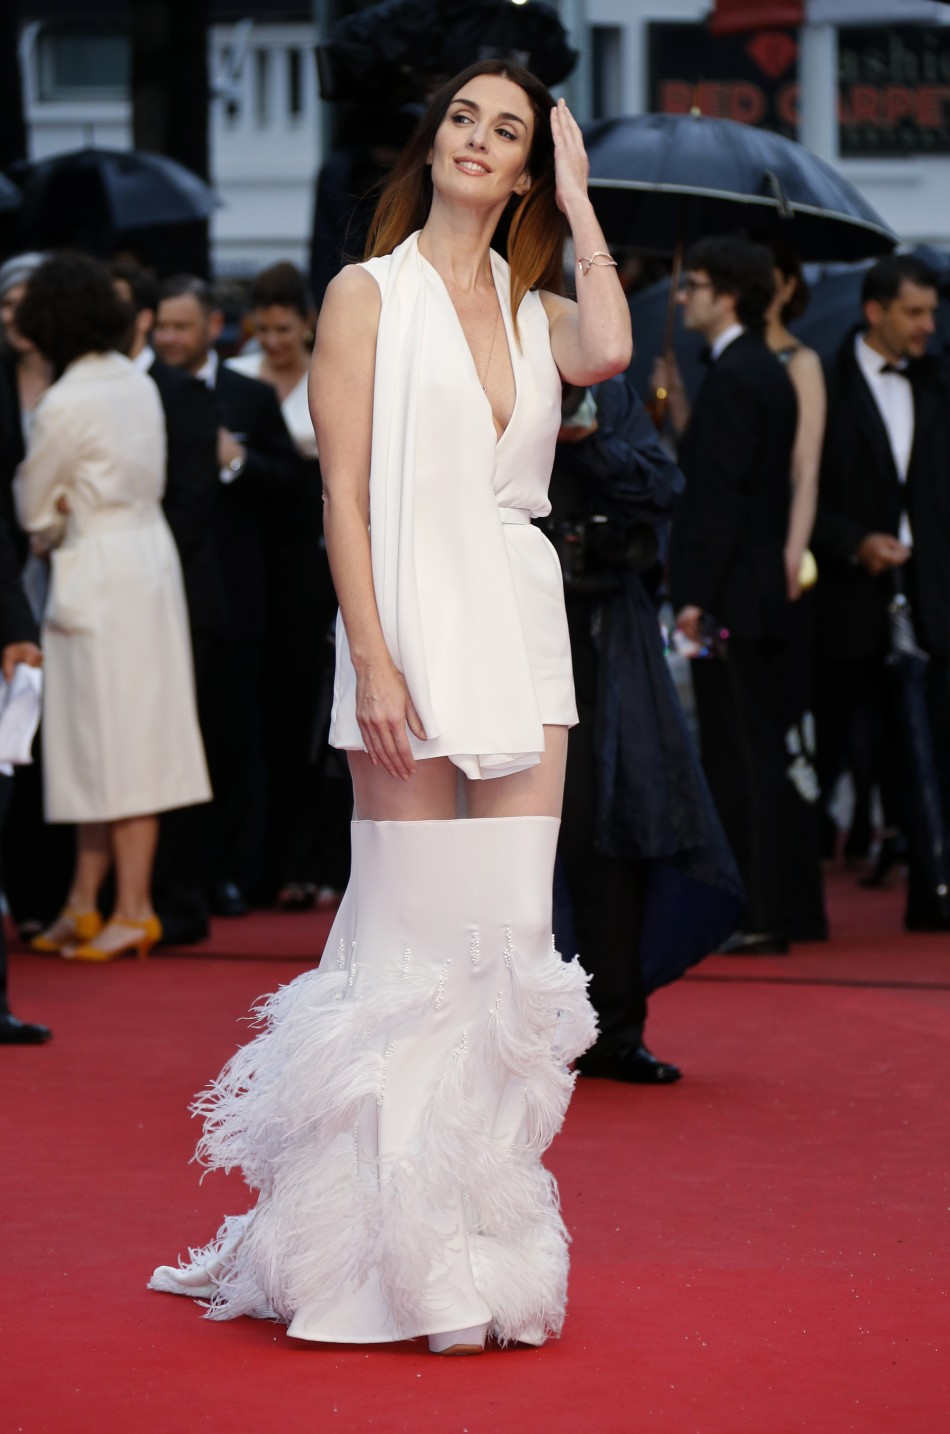 Actress Paz Vega poses on the red carpet as she arrives for the screening of the film Jimmy P. Psychotherapy of a Plains Indian in competition at the 66th Cannes Film Festival in Cannes May 18, 2013.